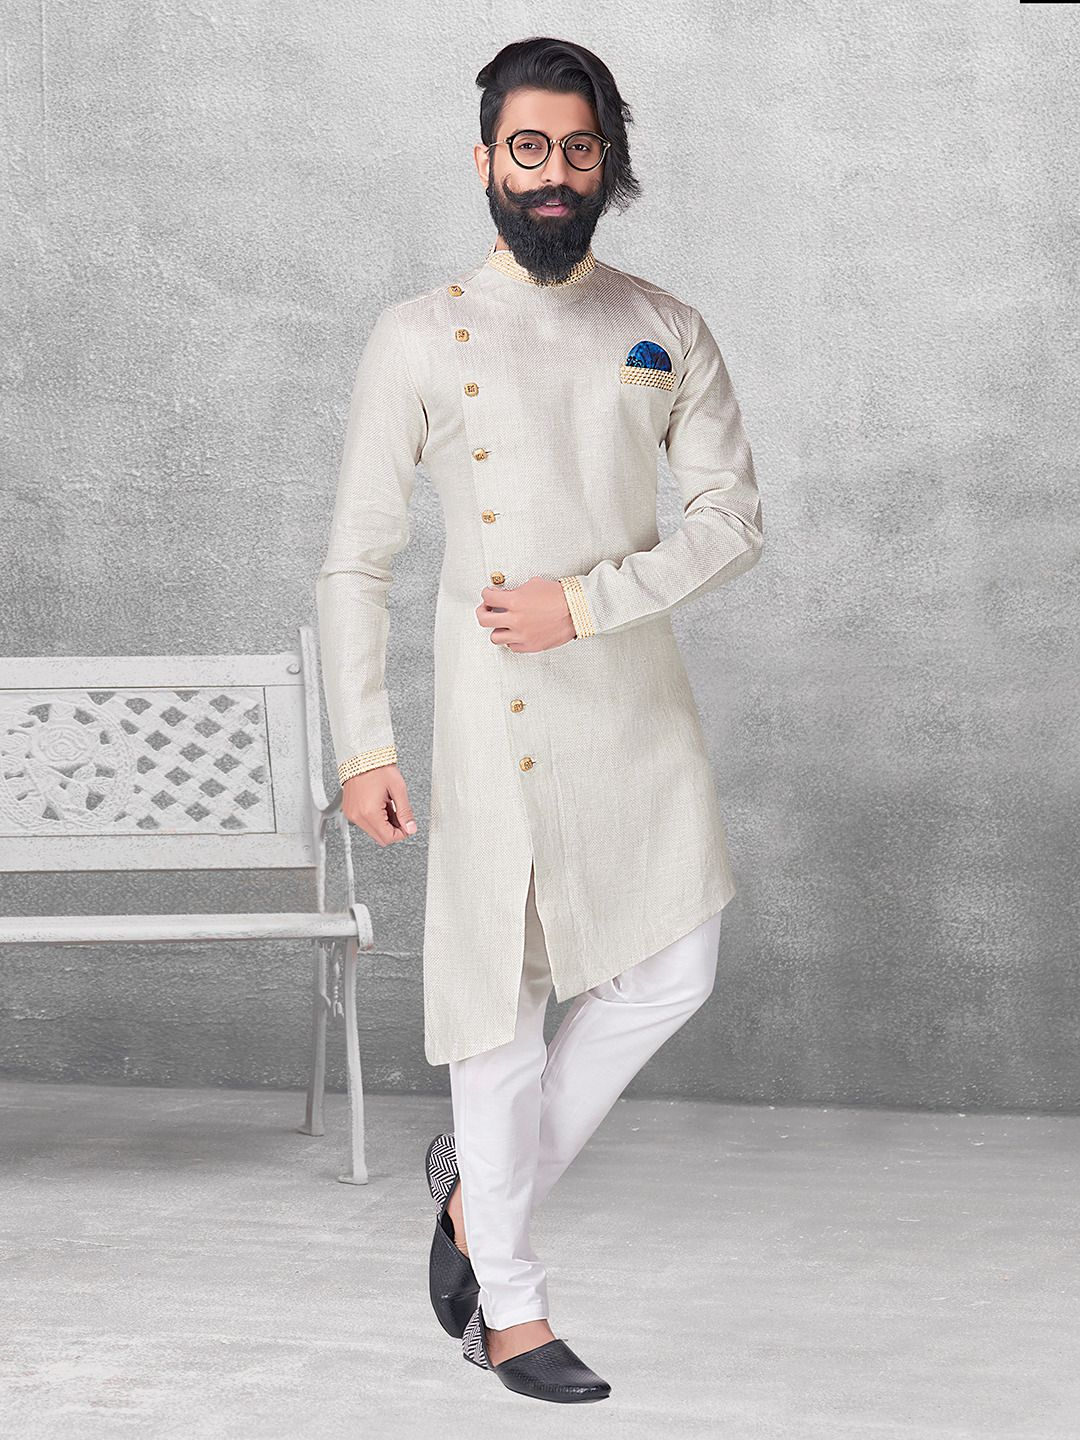 a8c2b459 Shop Cream color silk kurta suit online from G3fashion India. Brand - G3,  Product code - G3-MKS0543, Price - 3999, Color - Cream, Fabric - Silk,